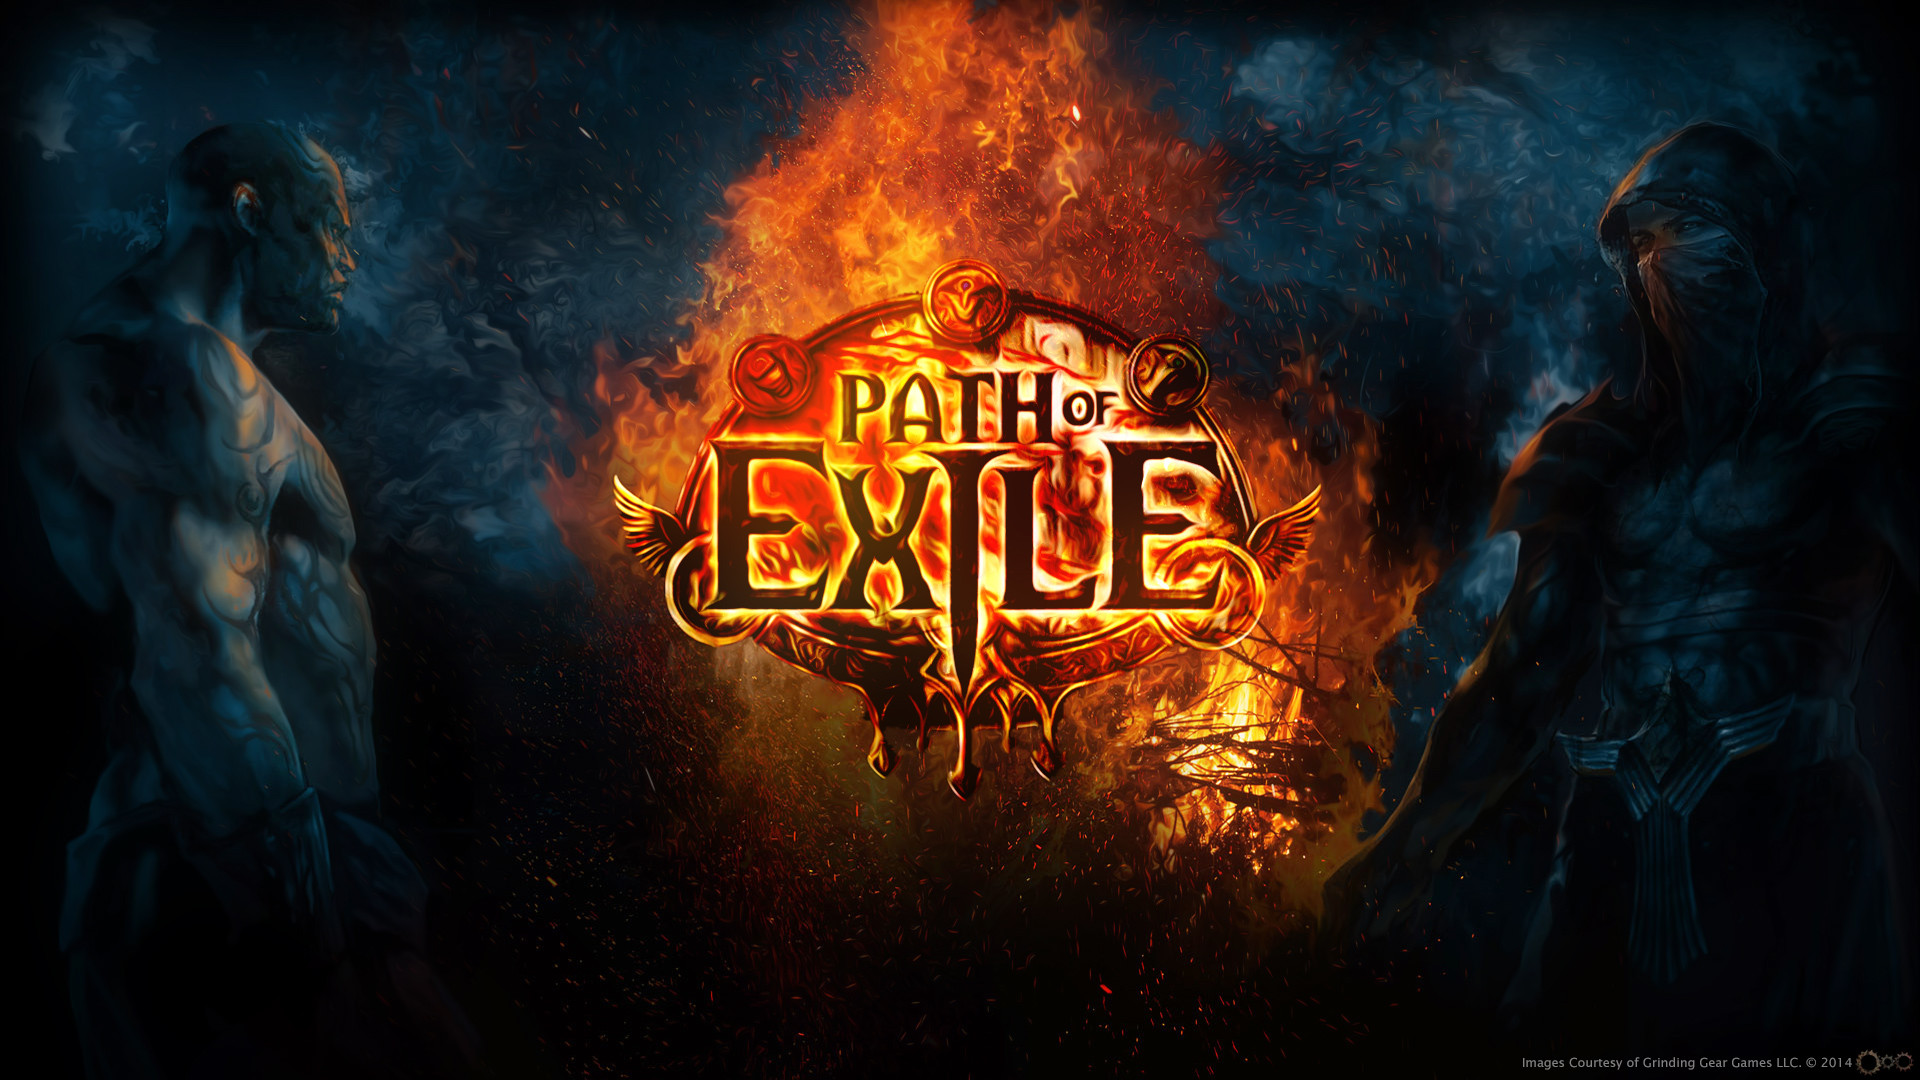 Path Of Exile Wallpaper: Path Of Exile 1.0 Mod For Diablo II: Lord Of Destruction